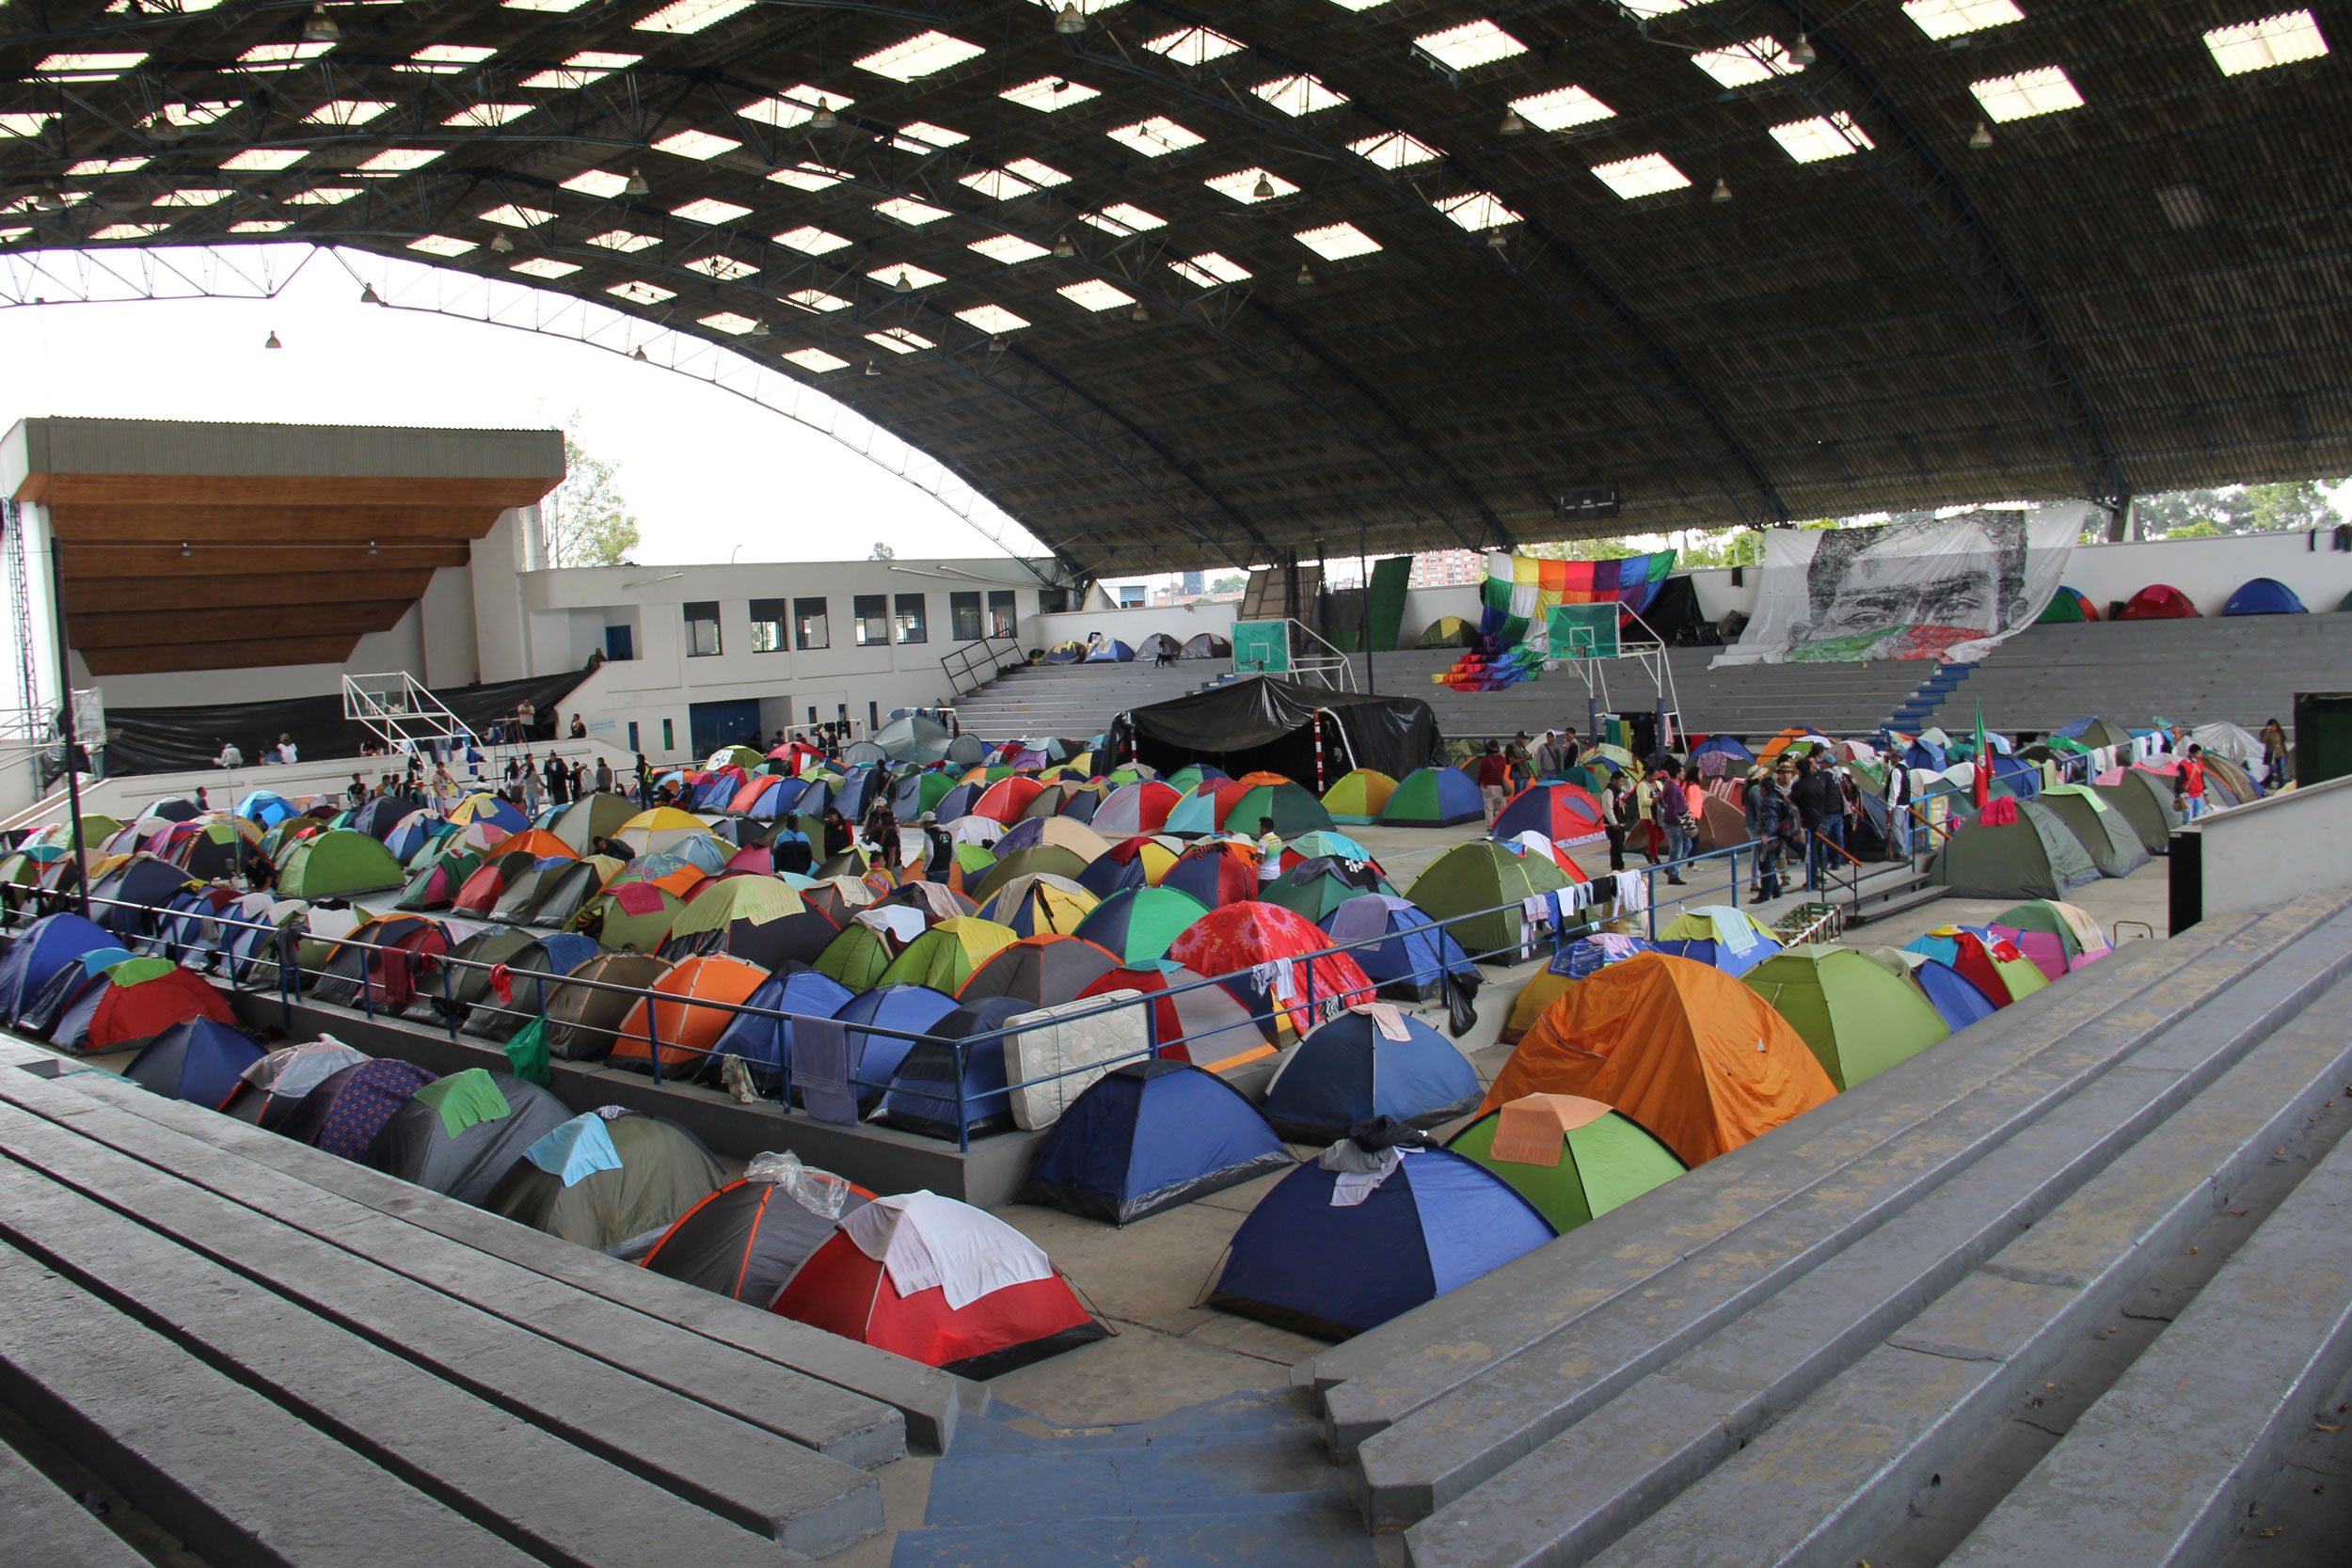 The floor of a stadium is filled with small pup tents.